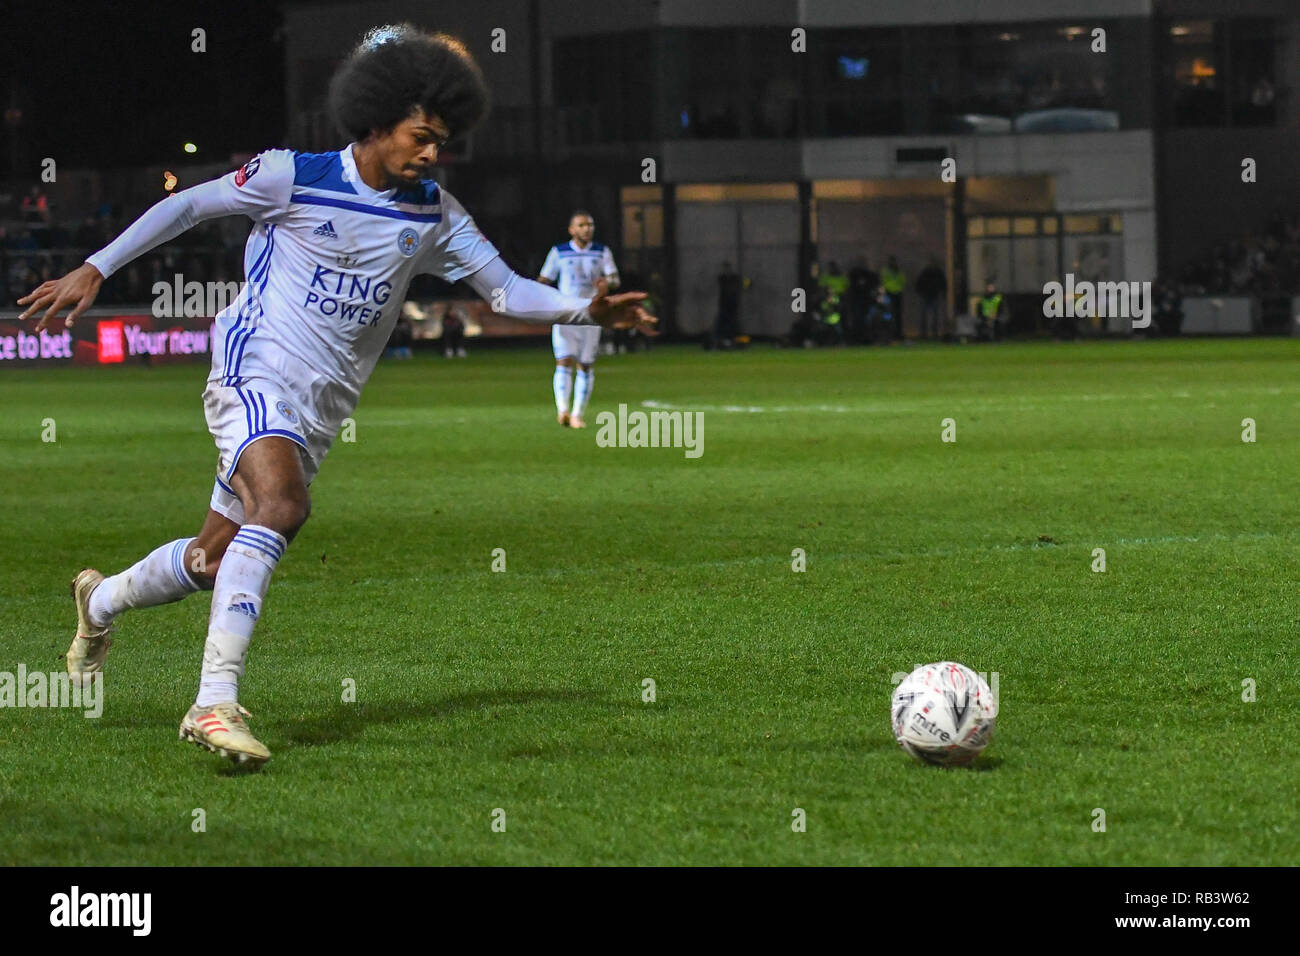 6th January 2019, Rodney Parade, Newport, Wales ; The Emirates FA Cup, 3rd Round, Newport County vs Leicester City : Hamza Choudhury (38) of Leicester City crossing the ball    Credit: Gareth Dalley/News Images    English Football League images are subject to DataCo Licence - Stock Image